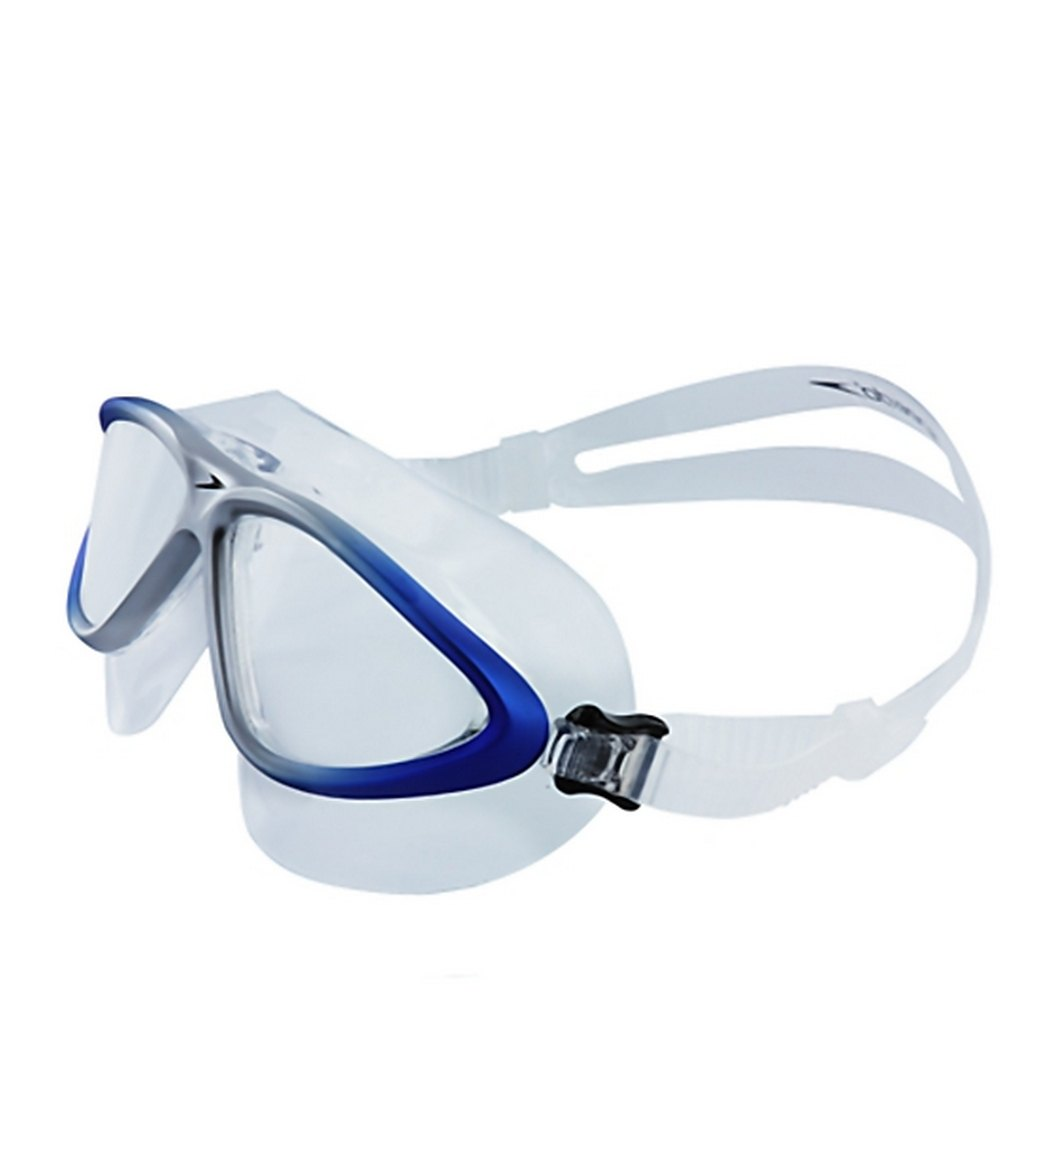 20f63e5de8 Speedo Adult Hybrid Swim Mask at SwimOutlet.com